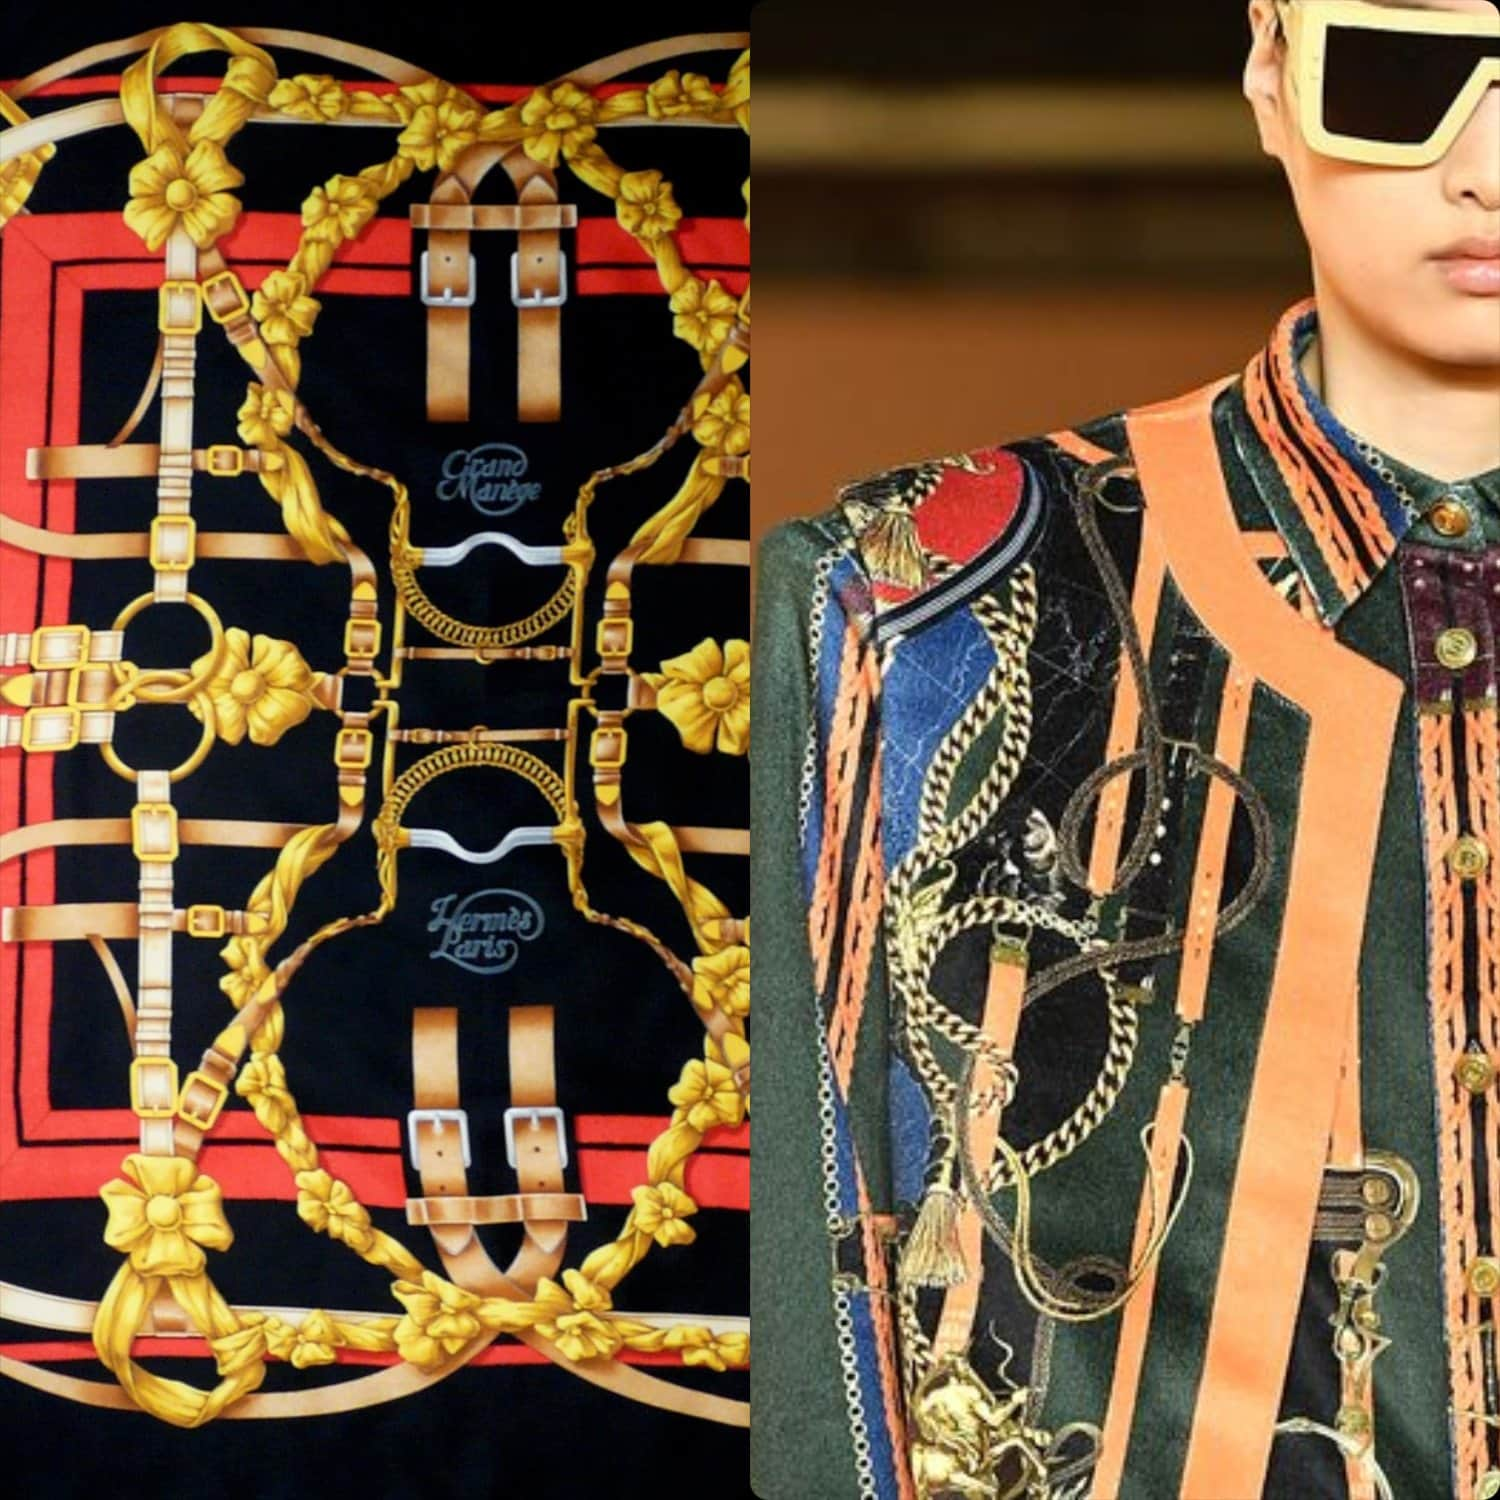 From left to right Hermes 1990 -Grand Manege- design by Henri d'Origny vs Balmain menswear Fall Winter 2020 -2021